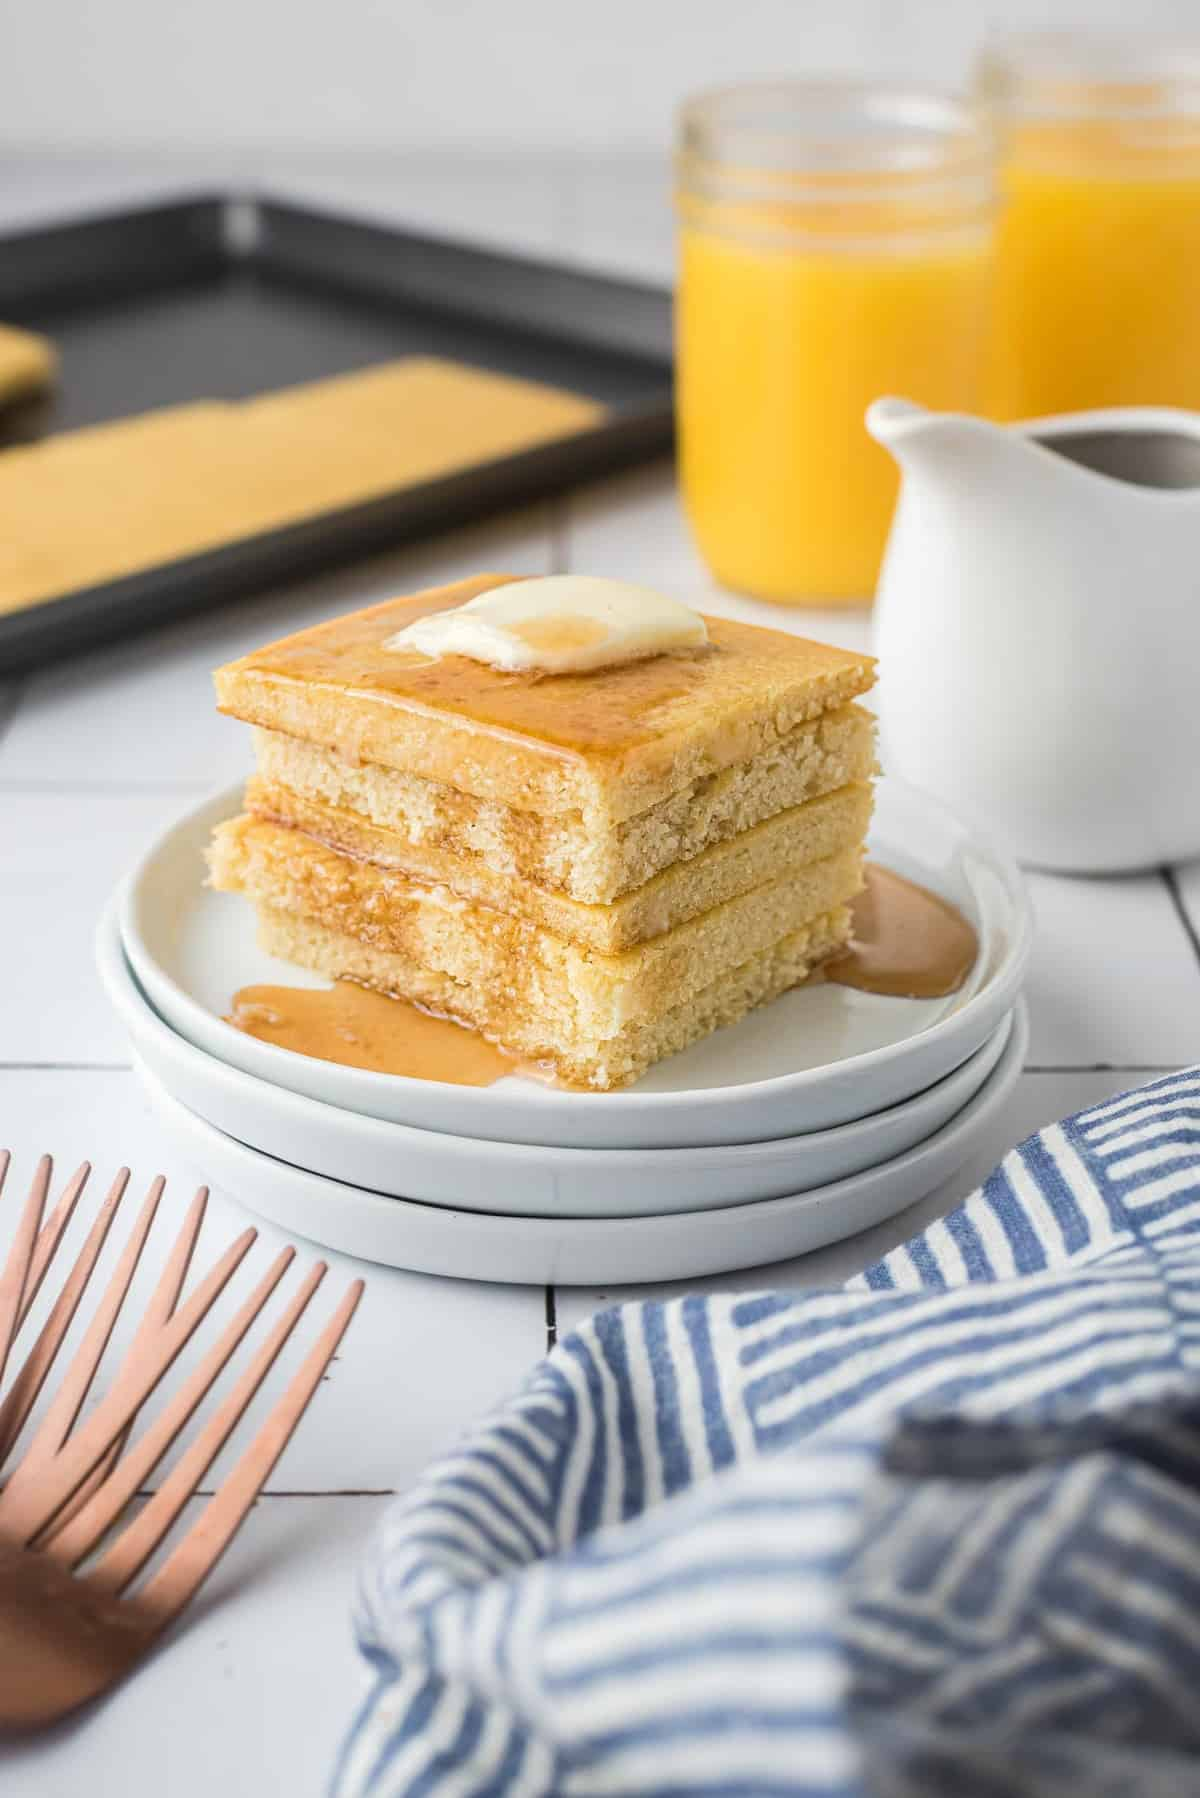 Stack of square cut pancakes on a white plate with butter and syrup.